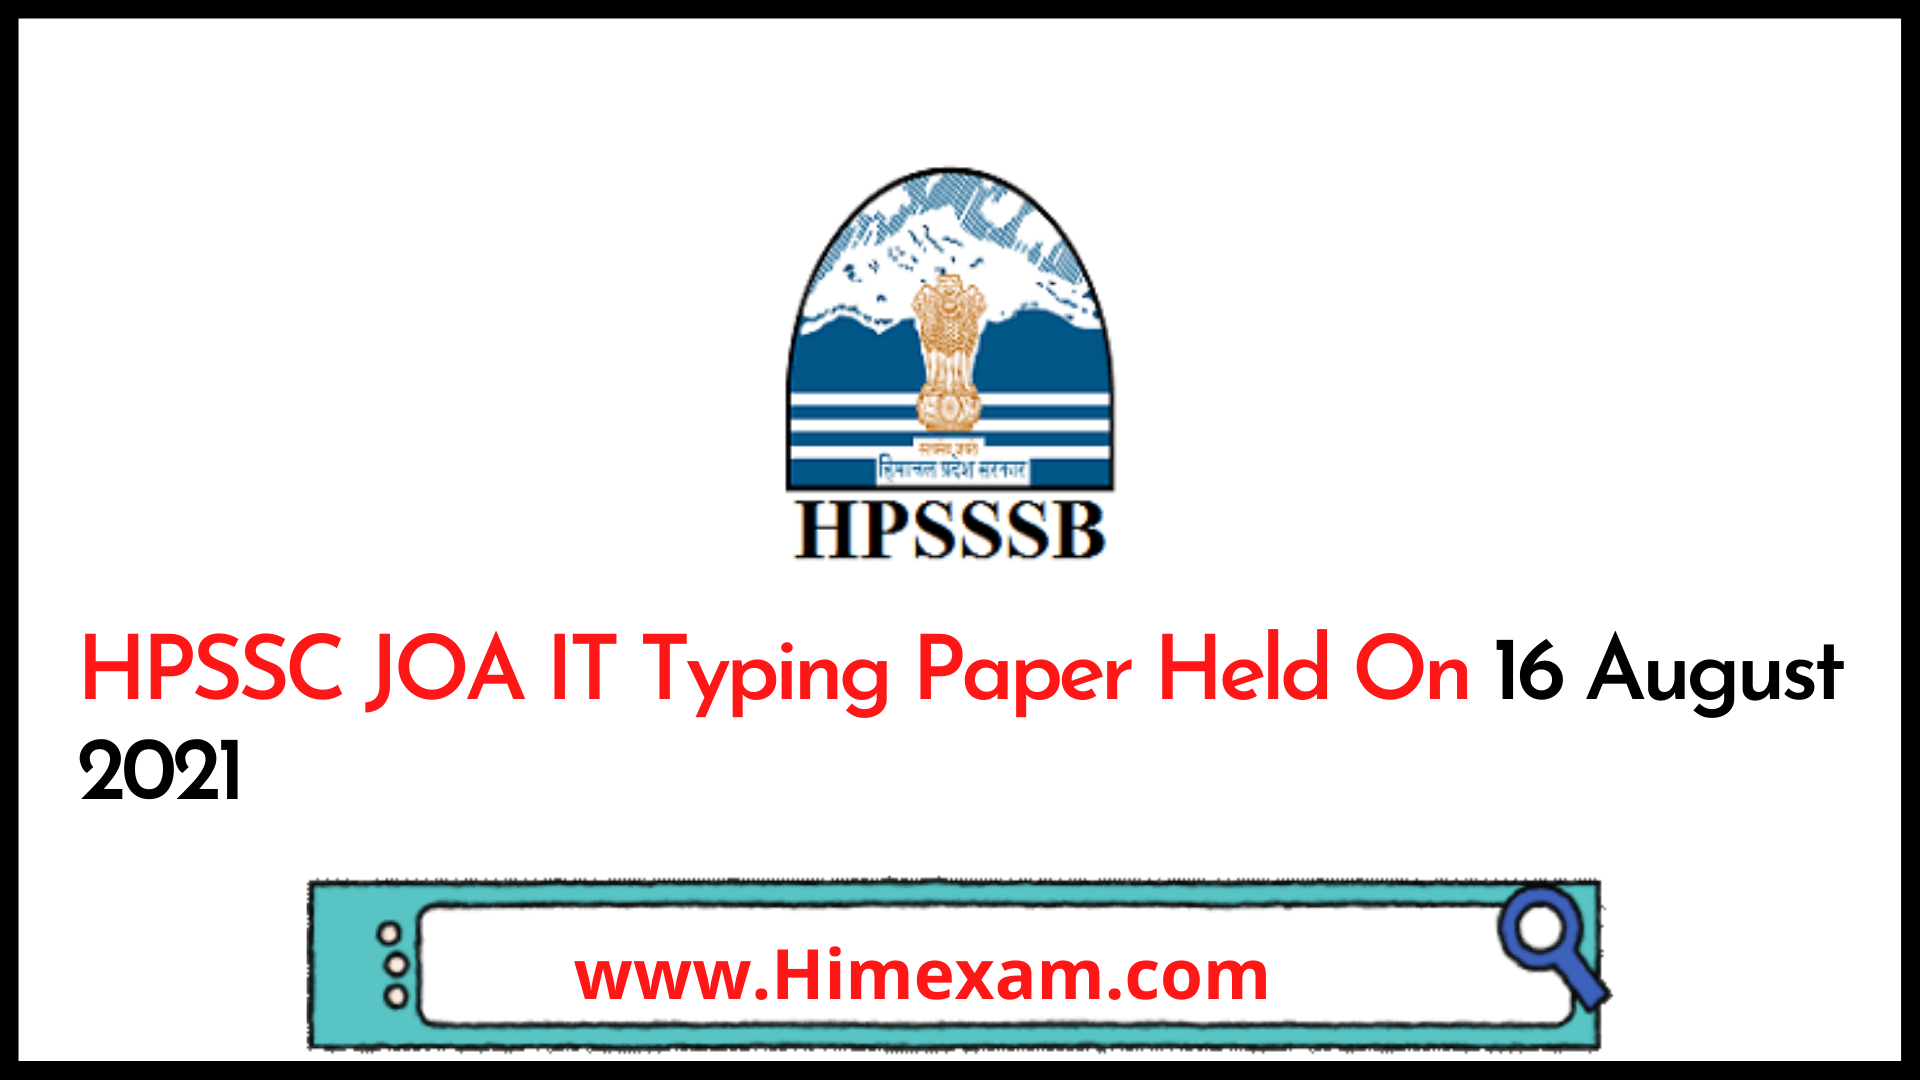 HPSSC JOA IT Typing Paper Held On 16 August 2021